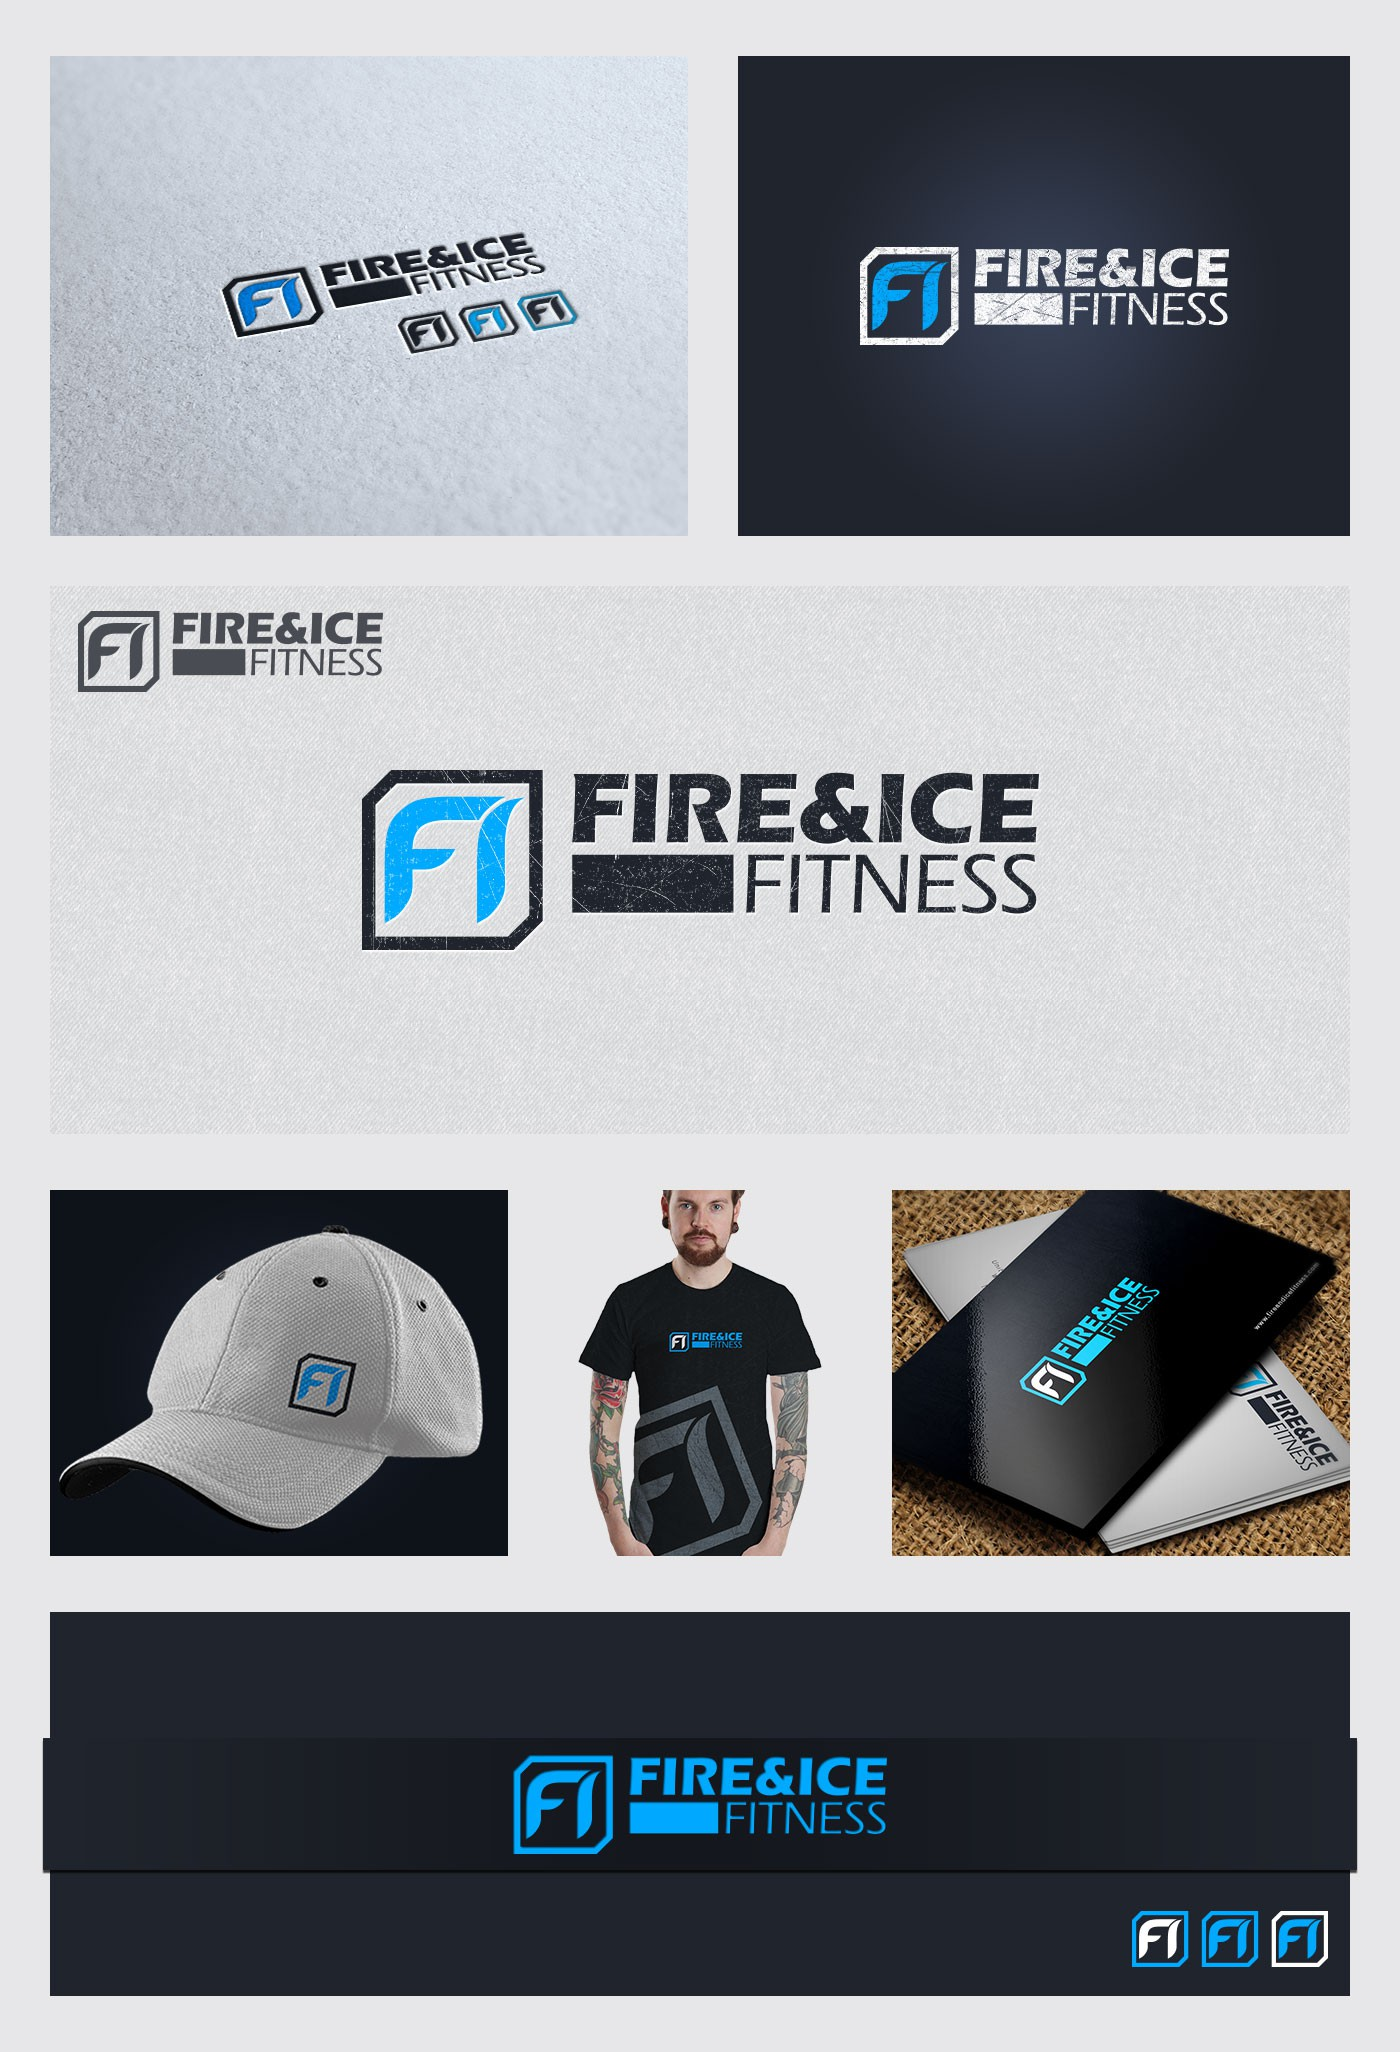 Fire And Ice Fitness Needs Brand Identity.. Lets see what you got.